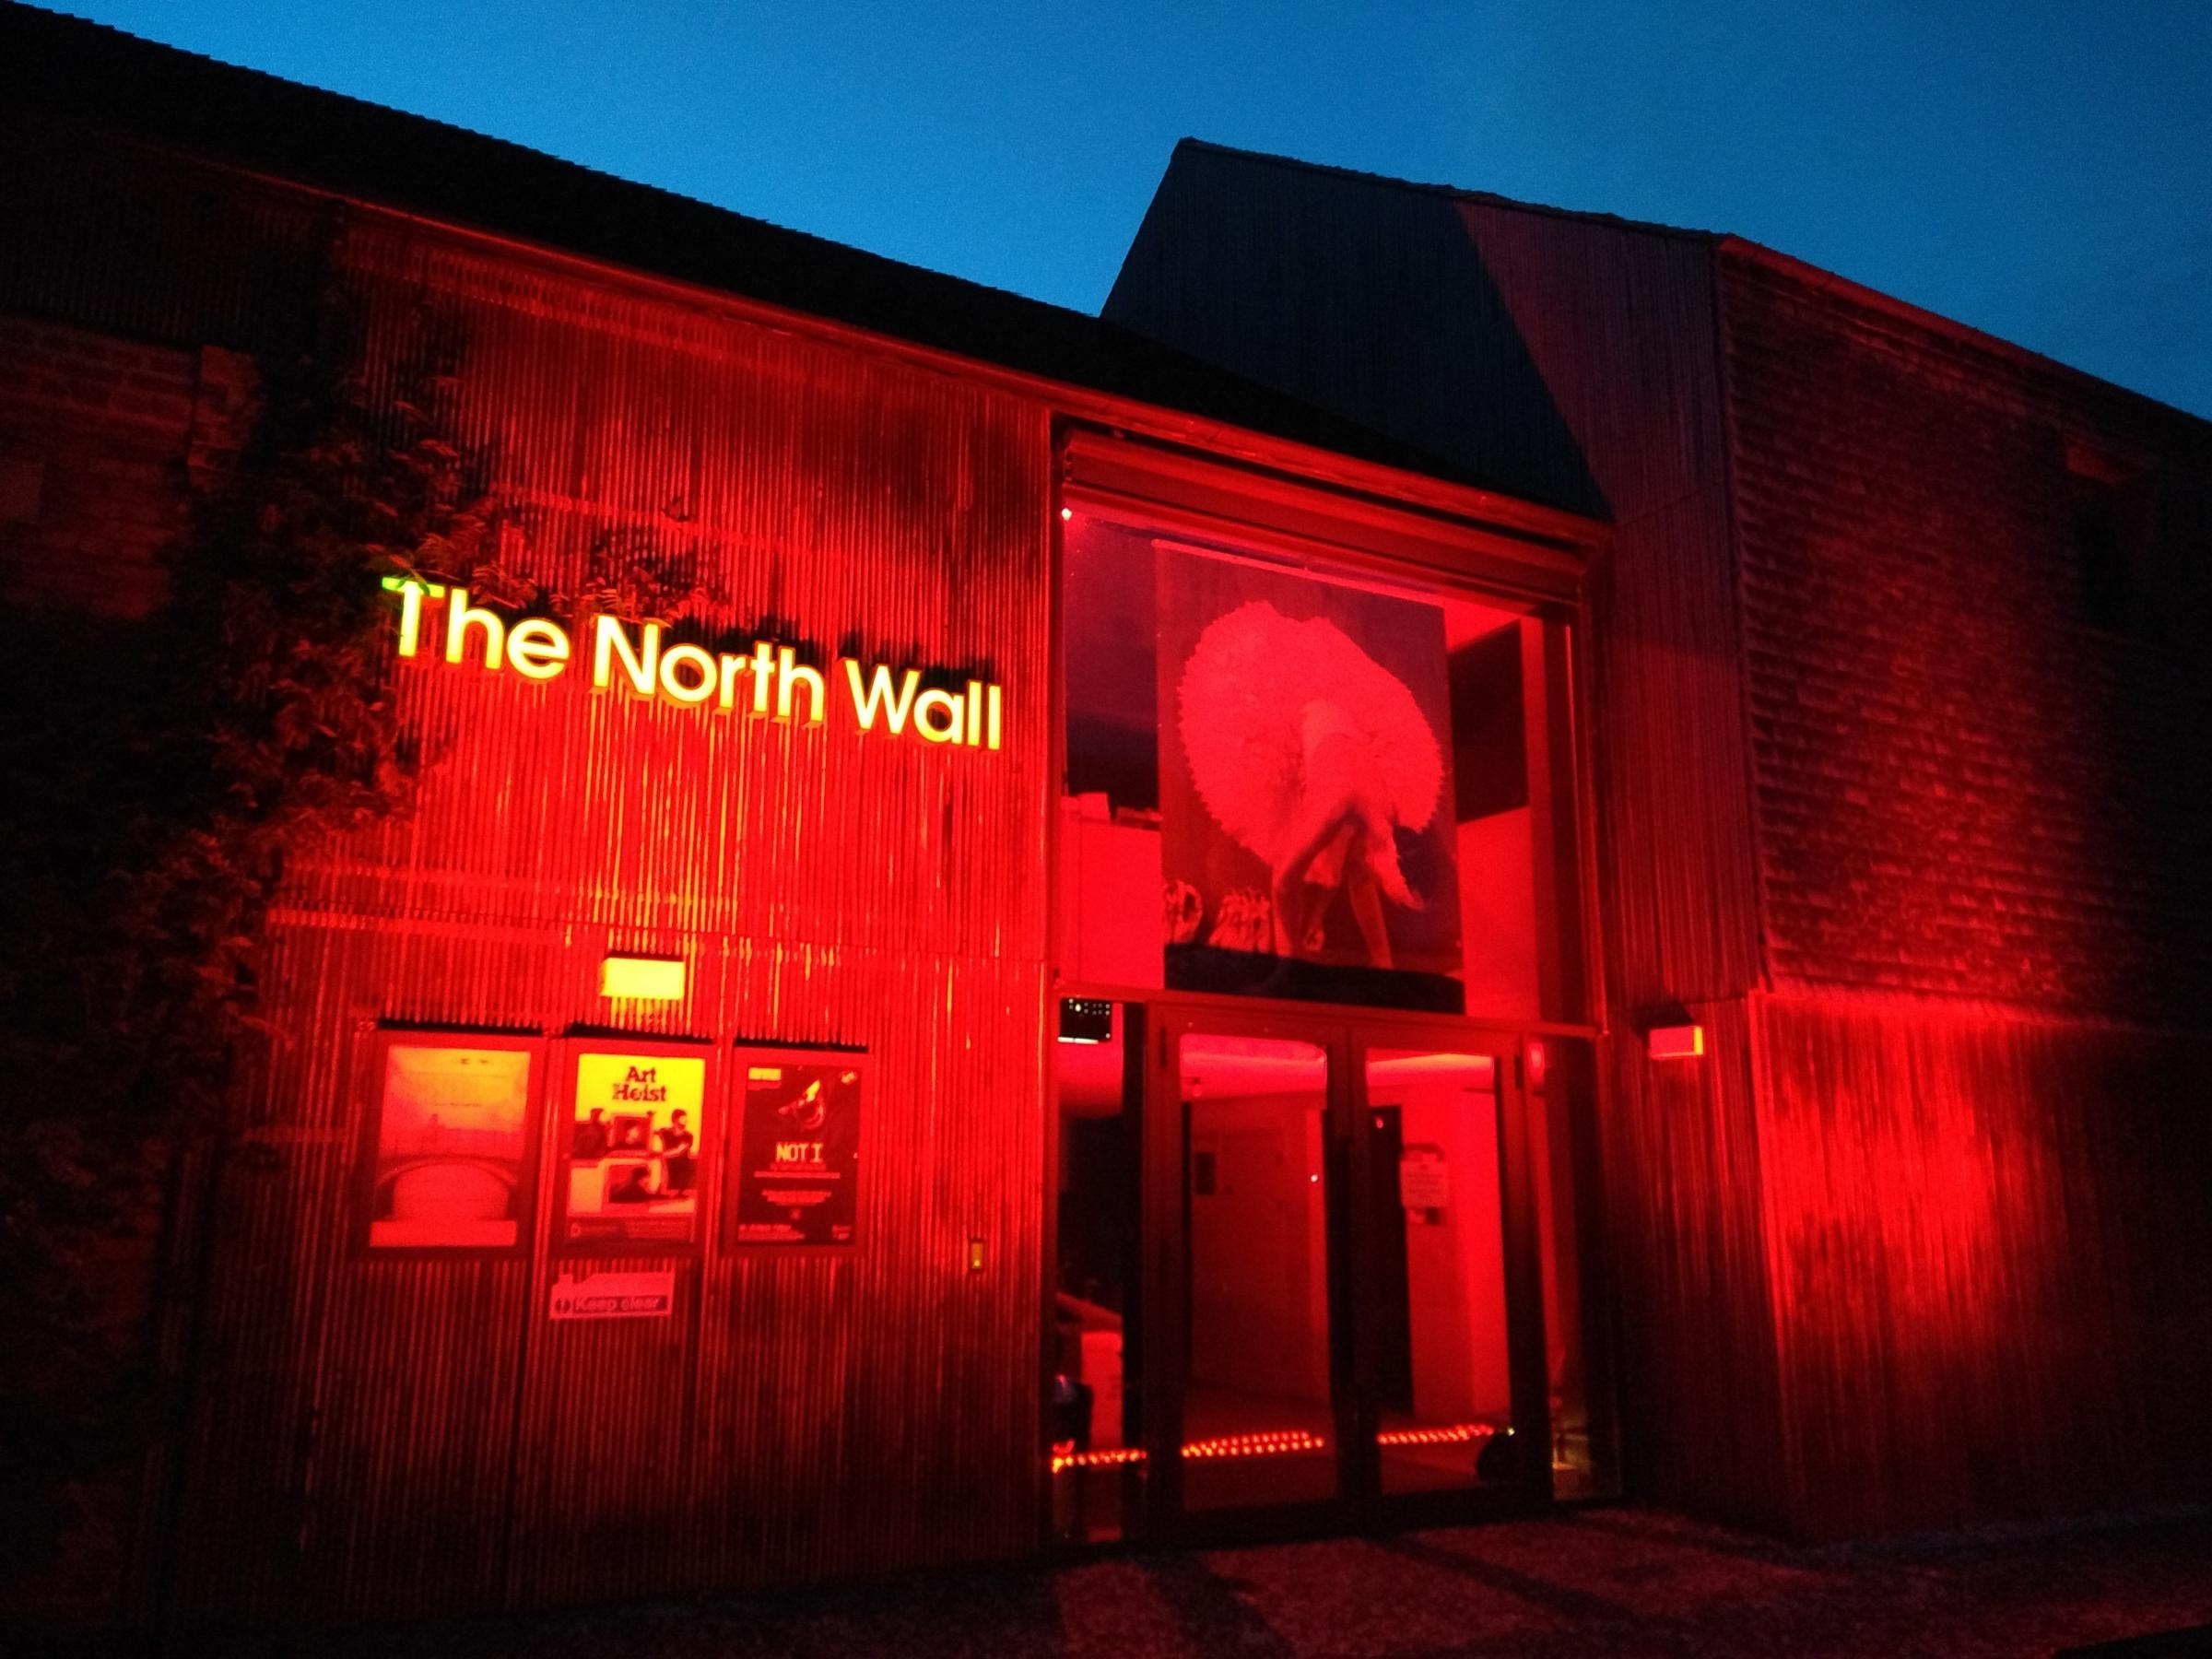 Oxfordshire theatres, such as The North Wall, lit up their buildings with red light last July to highlight the financial emergency in the sector. Many will do the same tonight